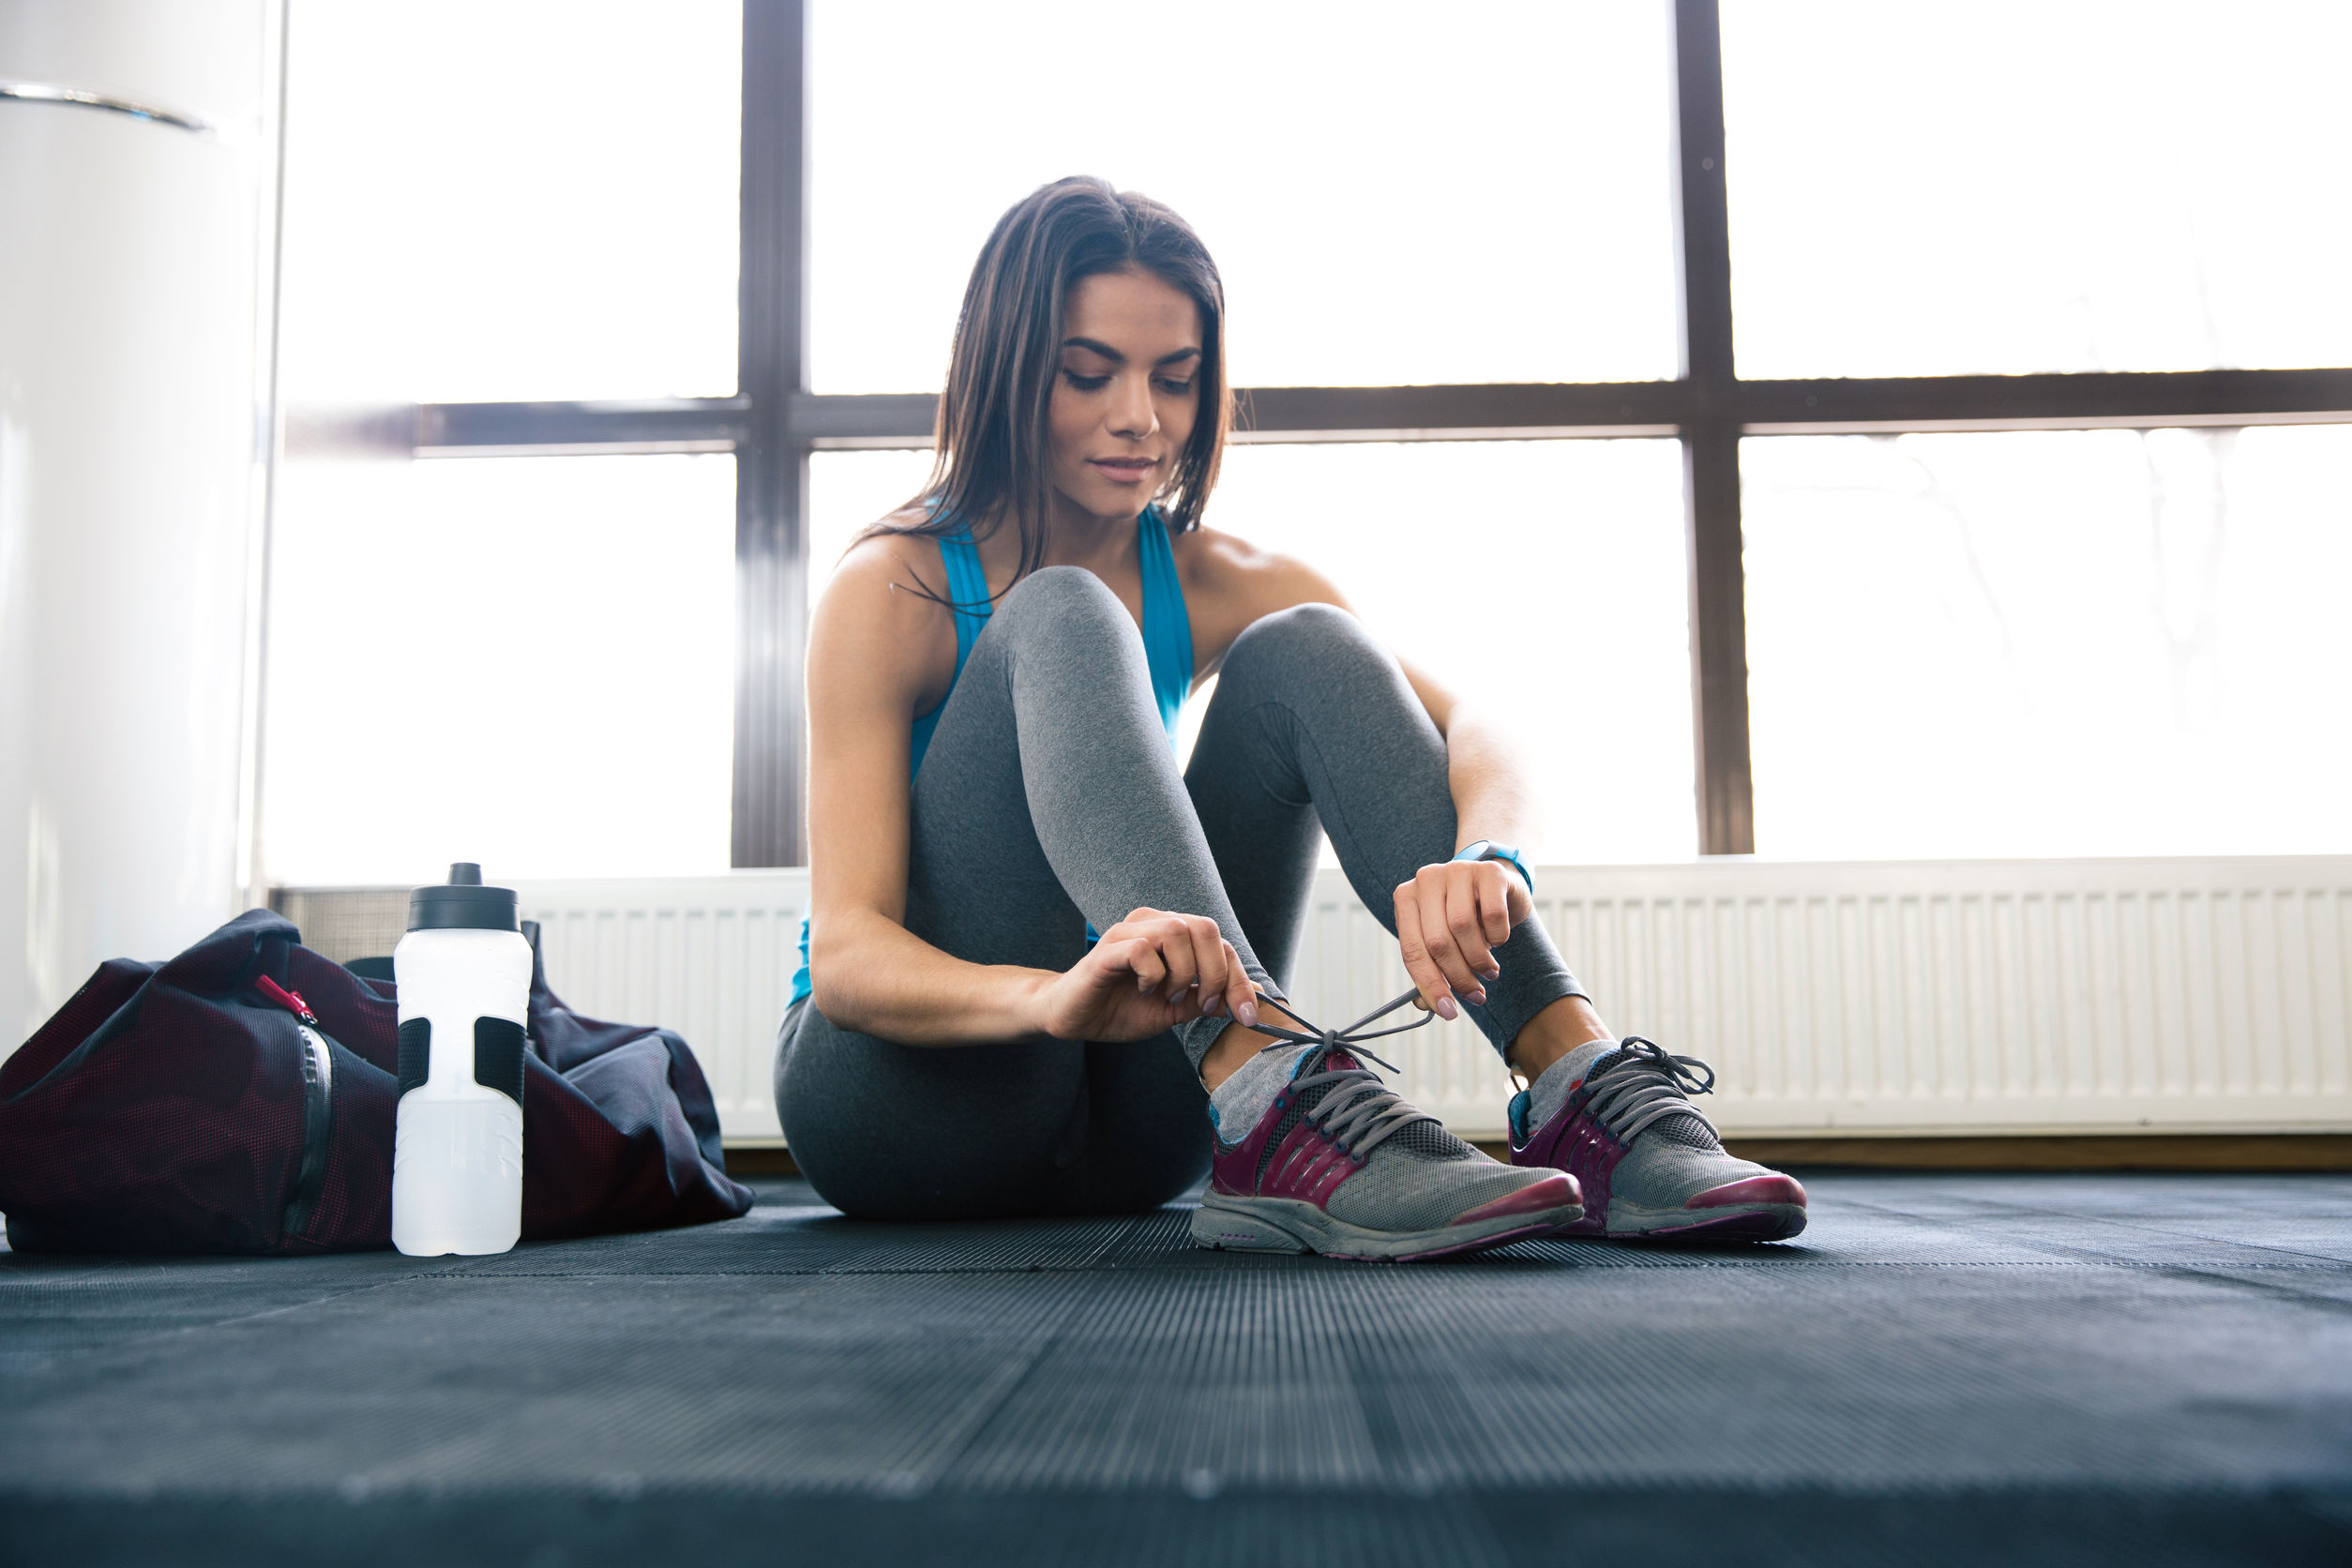 woman tying shoelaces at gym to get ready to workout